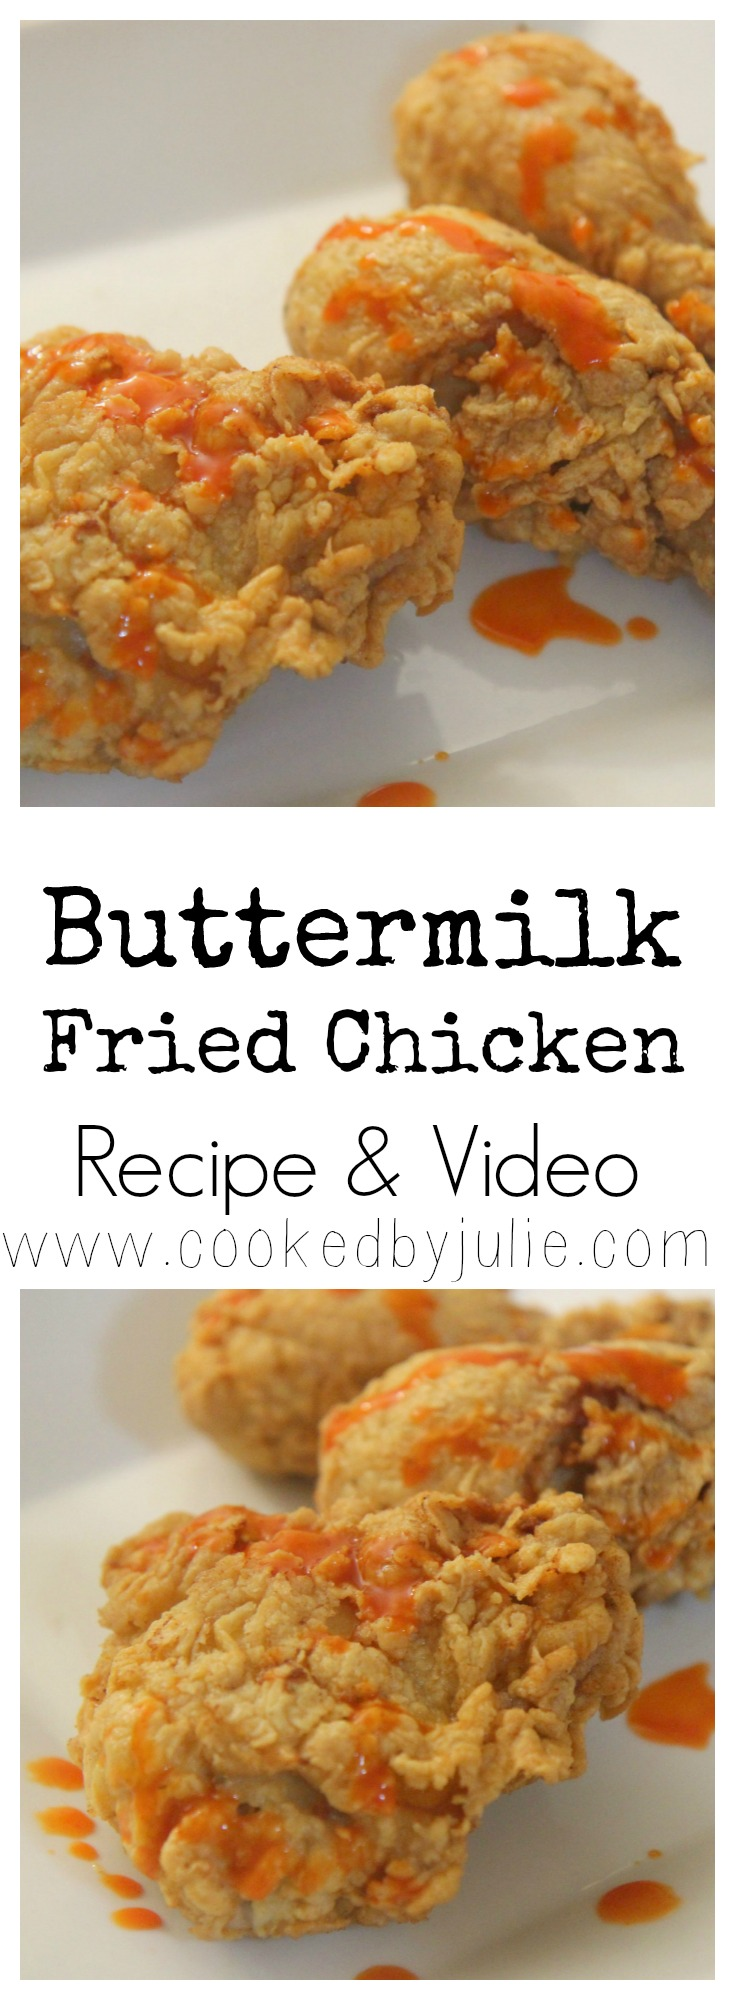 Buttermilk Fried Chicken Recipe from Cooked By Julie